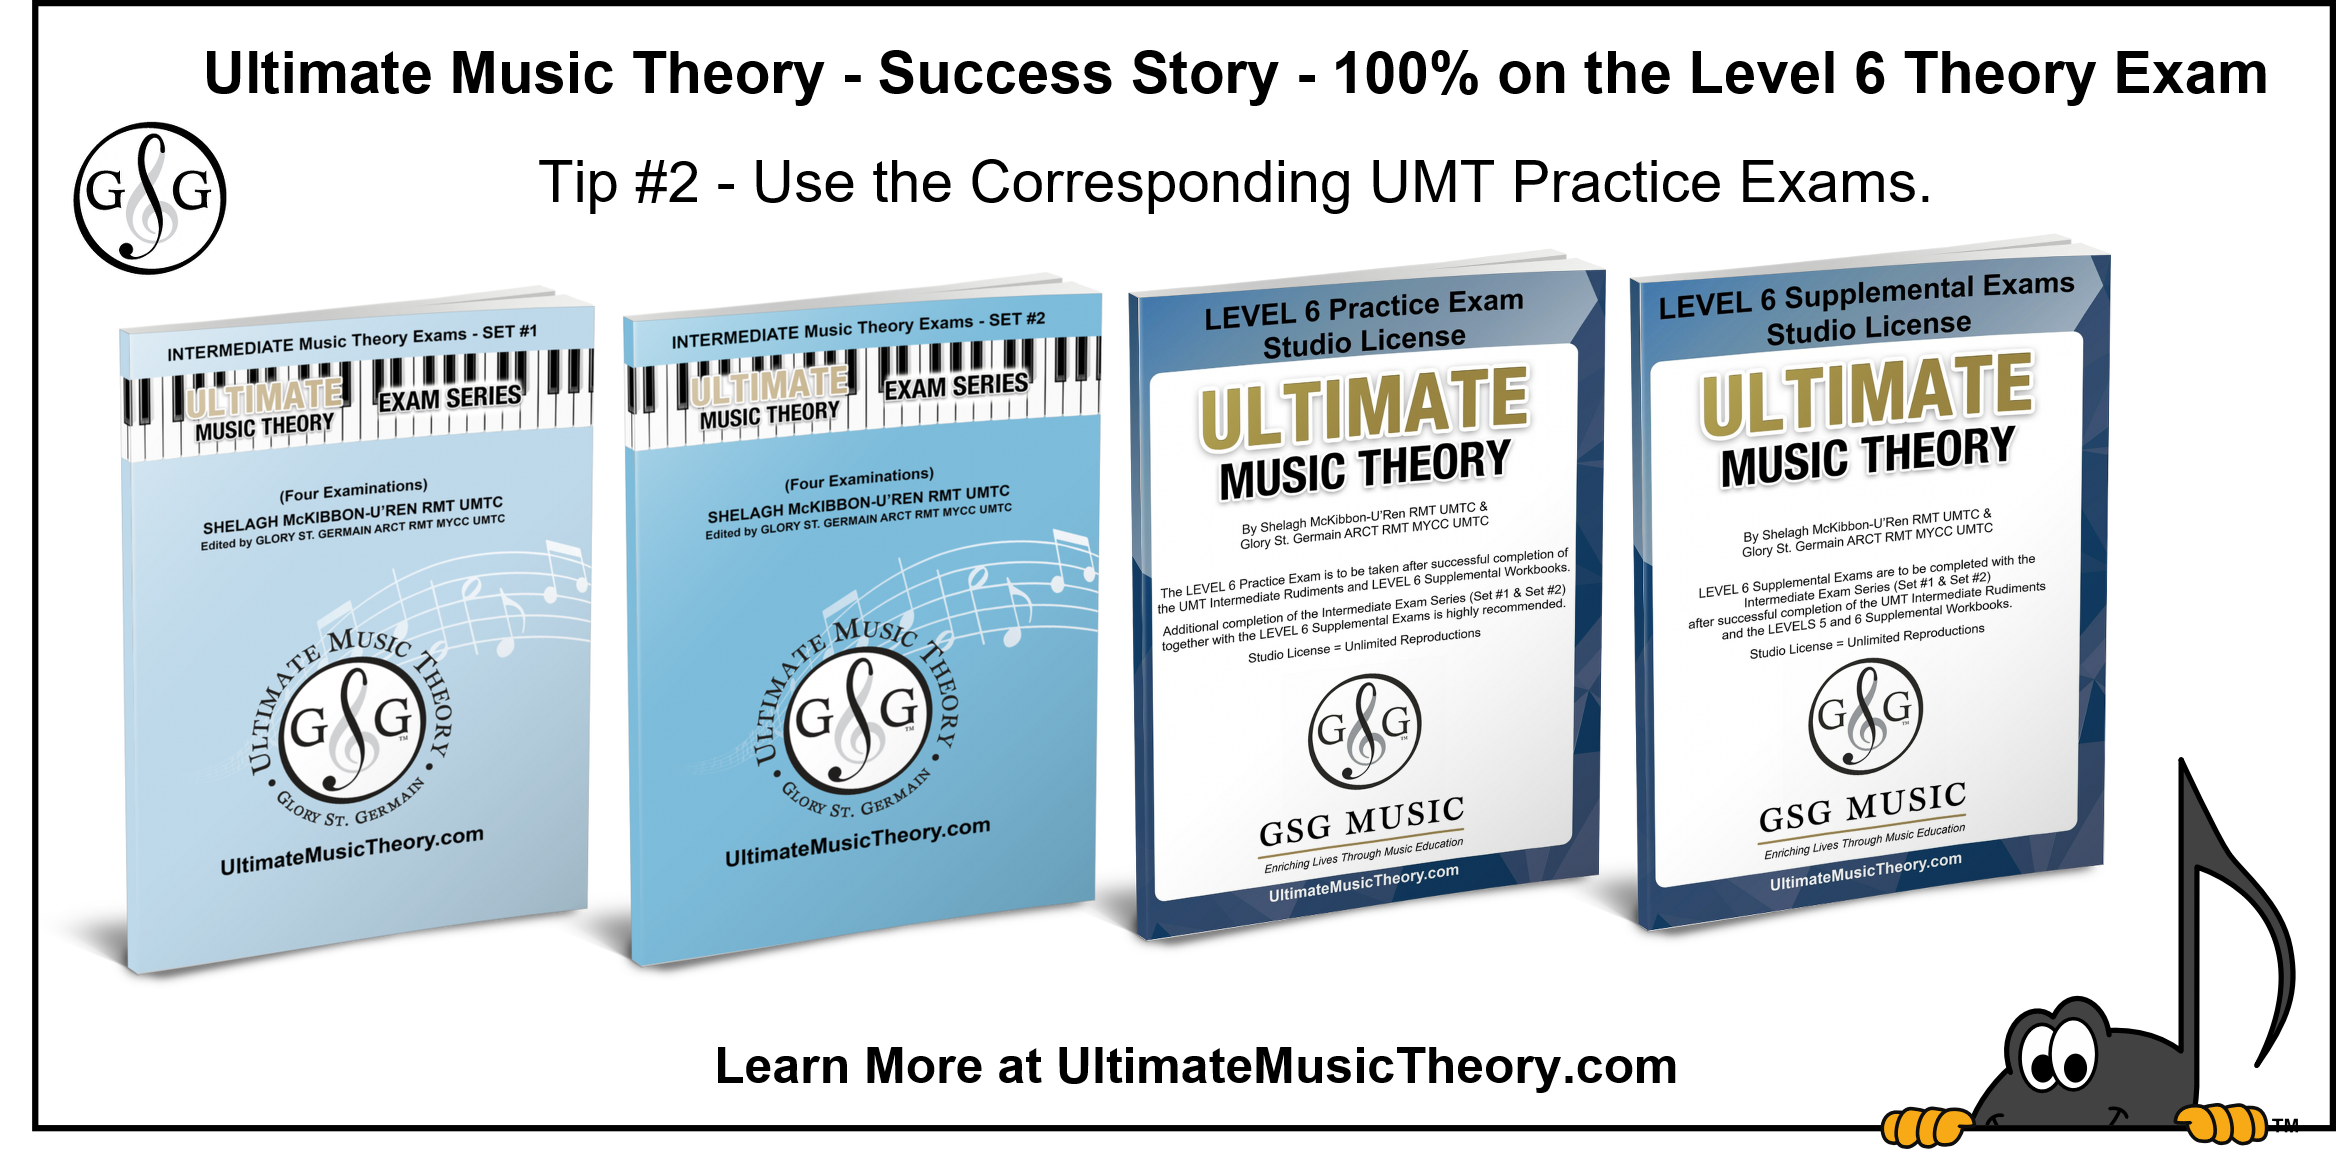 Ultimate Music Theory Perfect Level 6 Theory Exam - Practice Exams